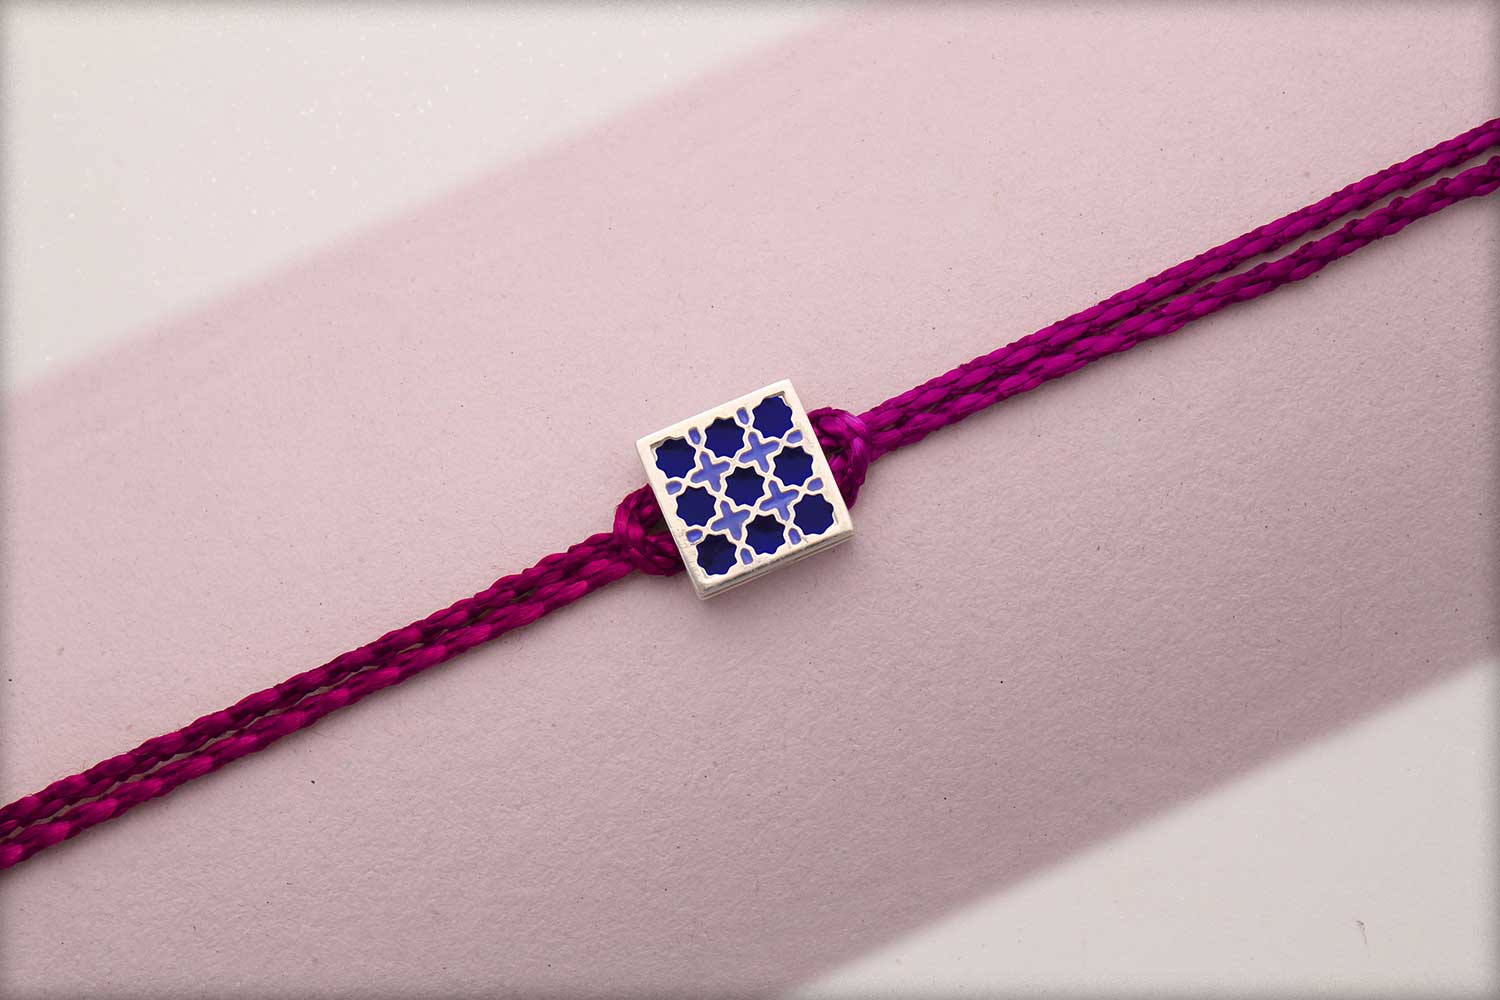 Miraas Square Multiwear Sterling Silver Rakhi - Blue and Lilac